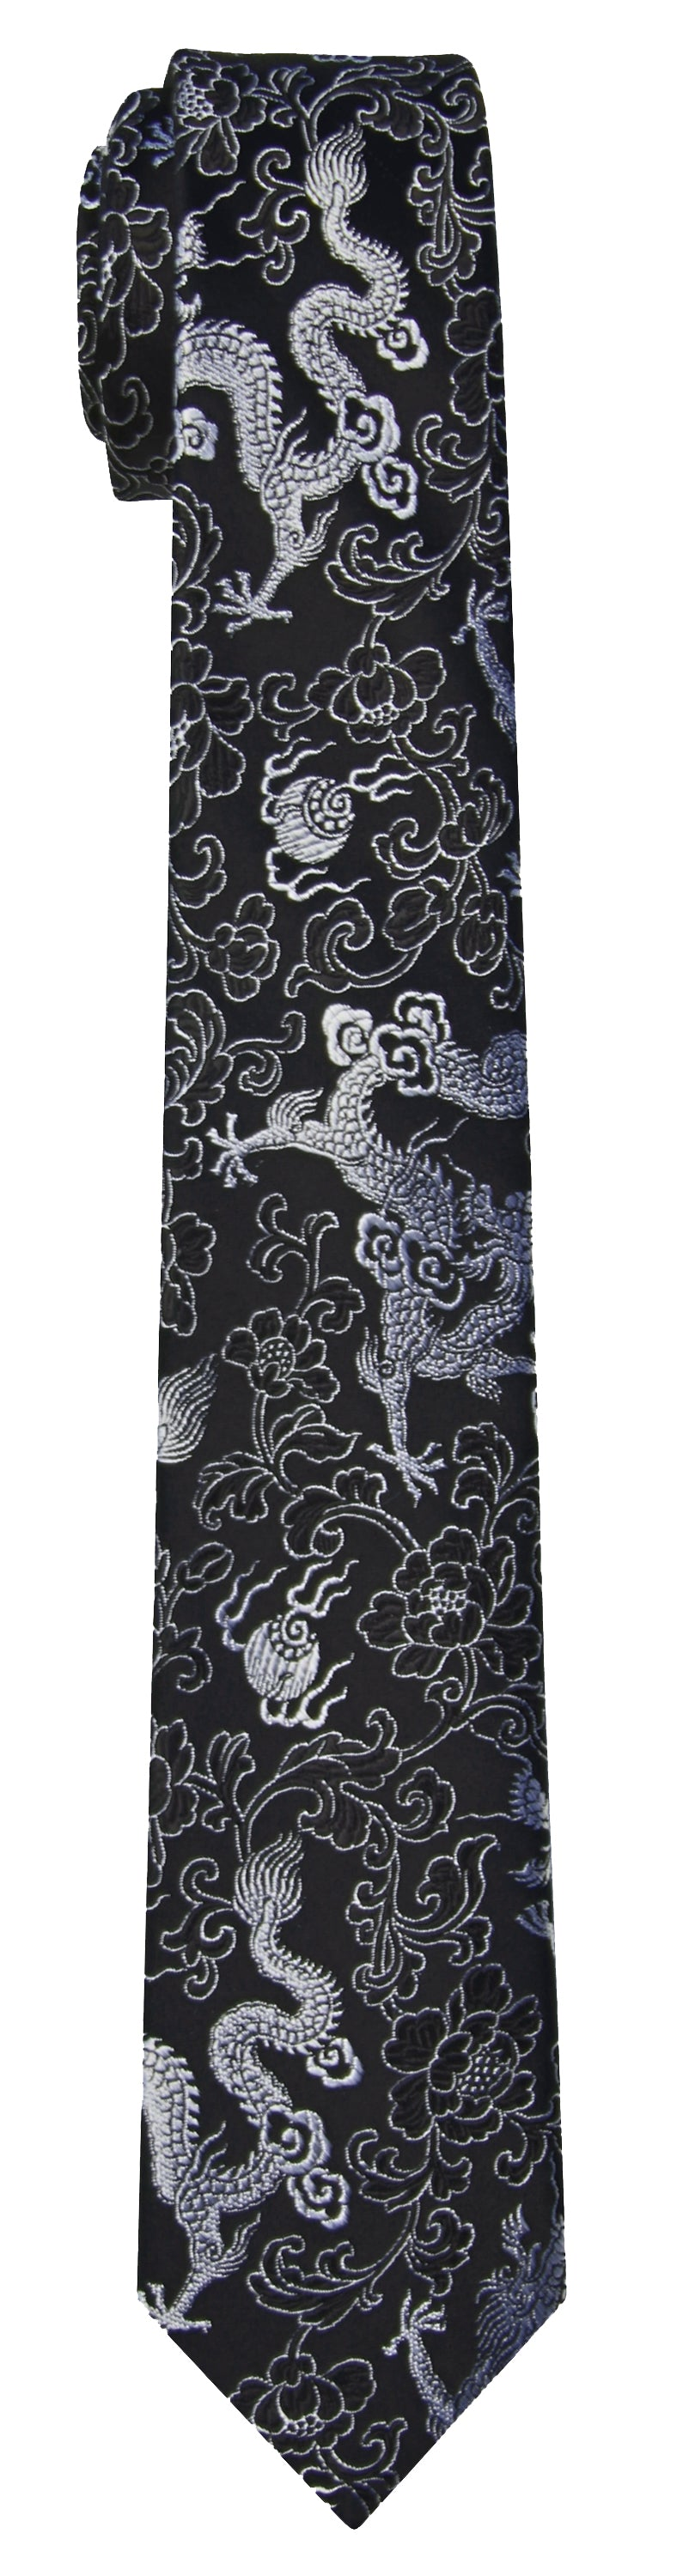 Mimi Fong Dragon Tie in Black & White